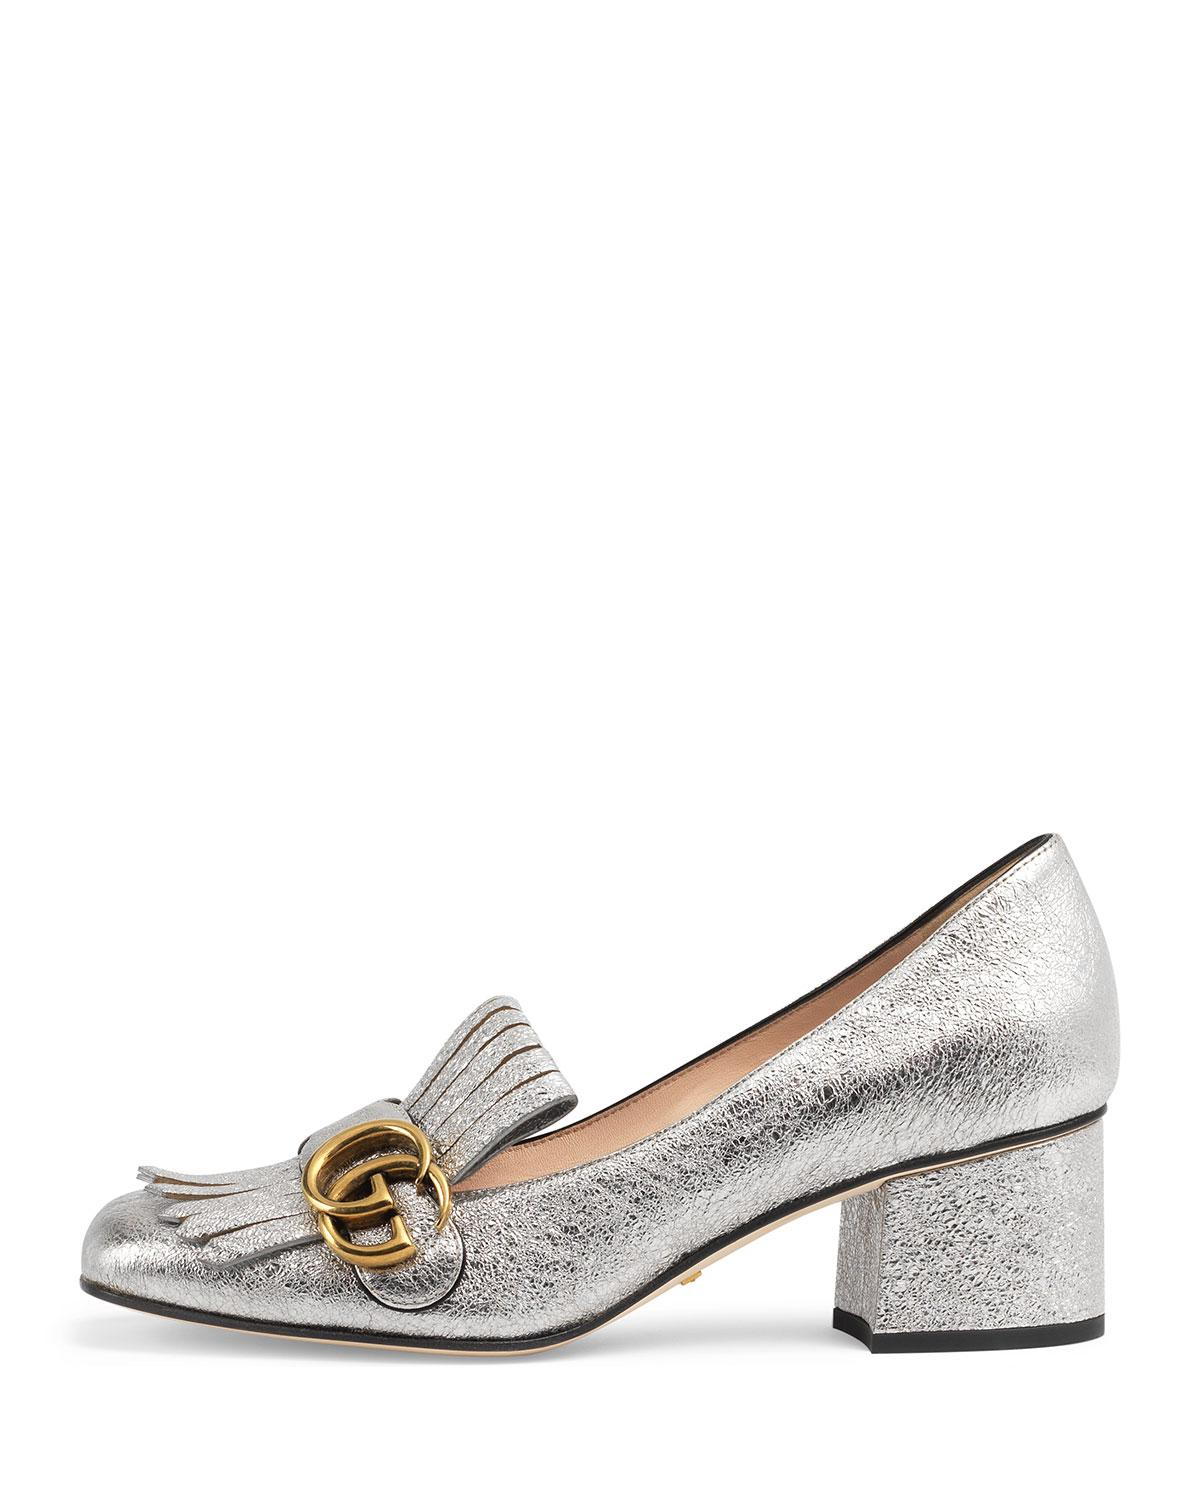 4c7314fbf2f Lyst - Gucci 55mm Marmont Metallic Loafer - Save 4%